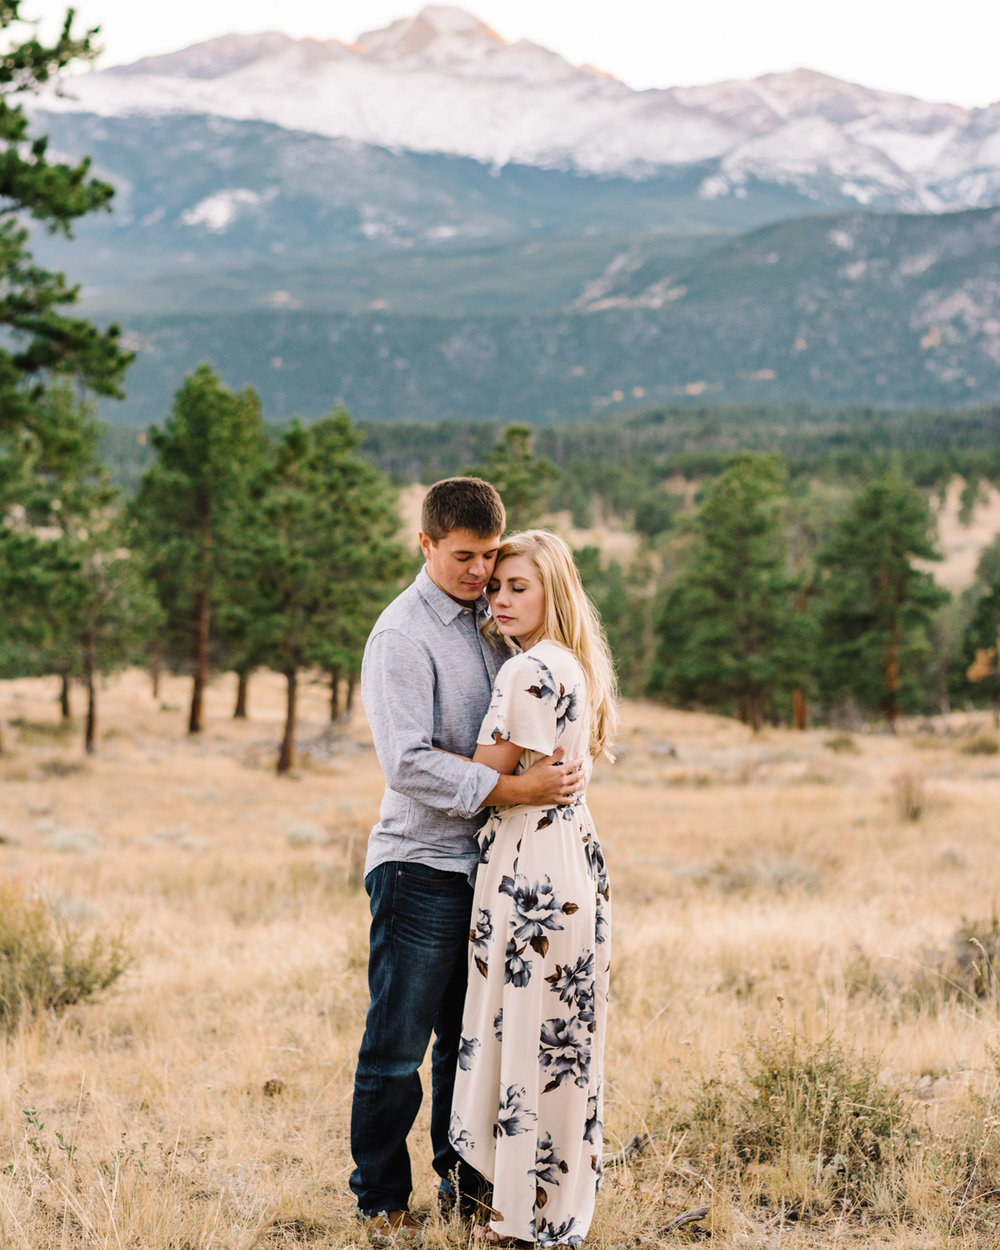 Rocky Mountain National Park Engagement-Neal Dieker-Colorado Photographer-Wichita, Kansas Photographer-Rocky Mountain Photography-177.jpg